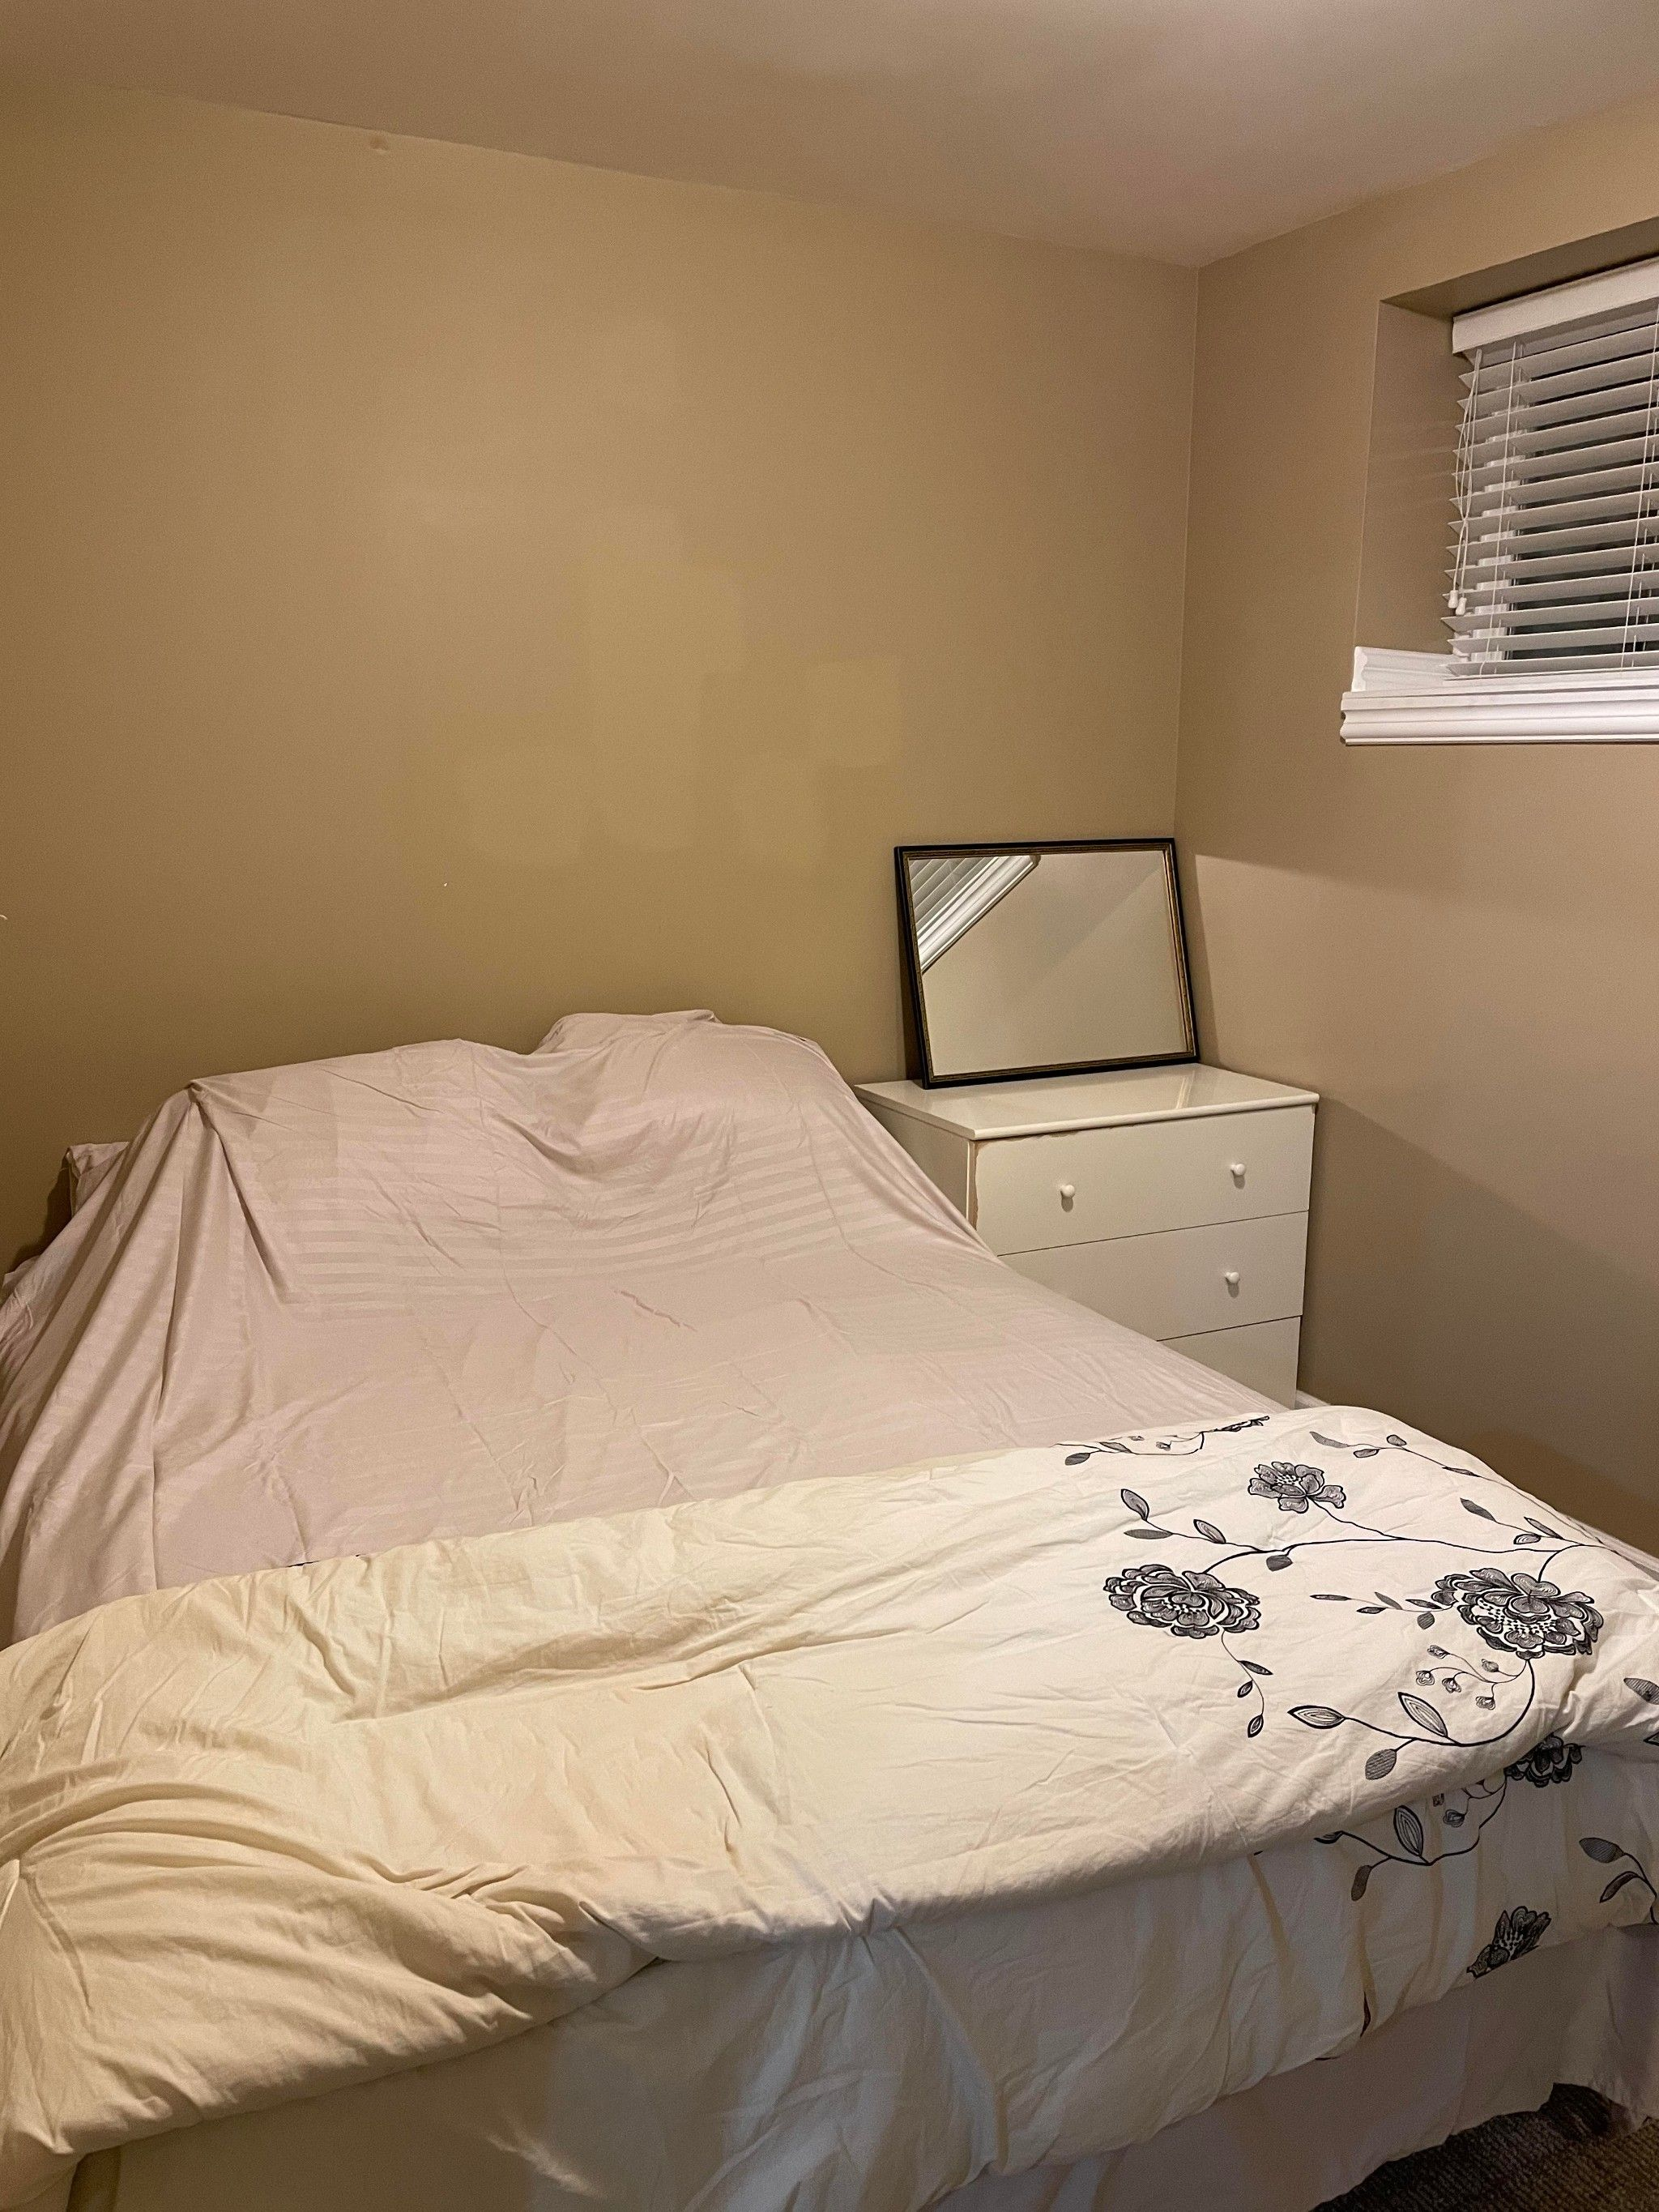 Photo 7: Photos: Lower level 2 bed 2648 Bendale Place in North Vancouver: Blueridge House for rent